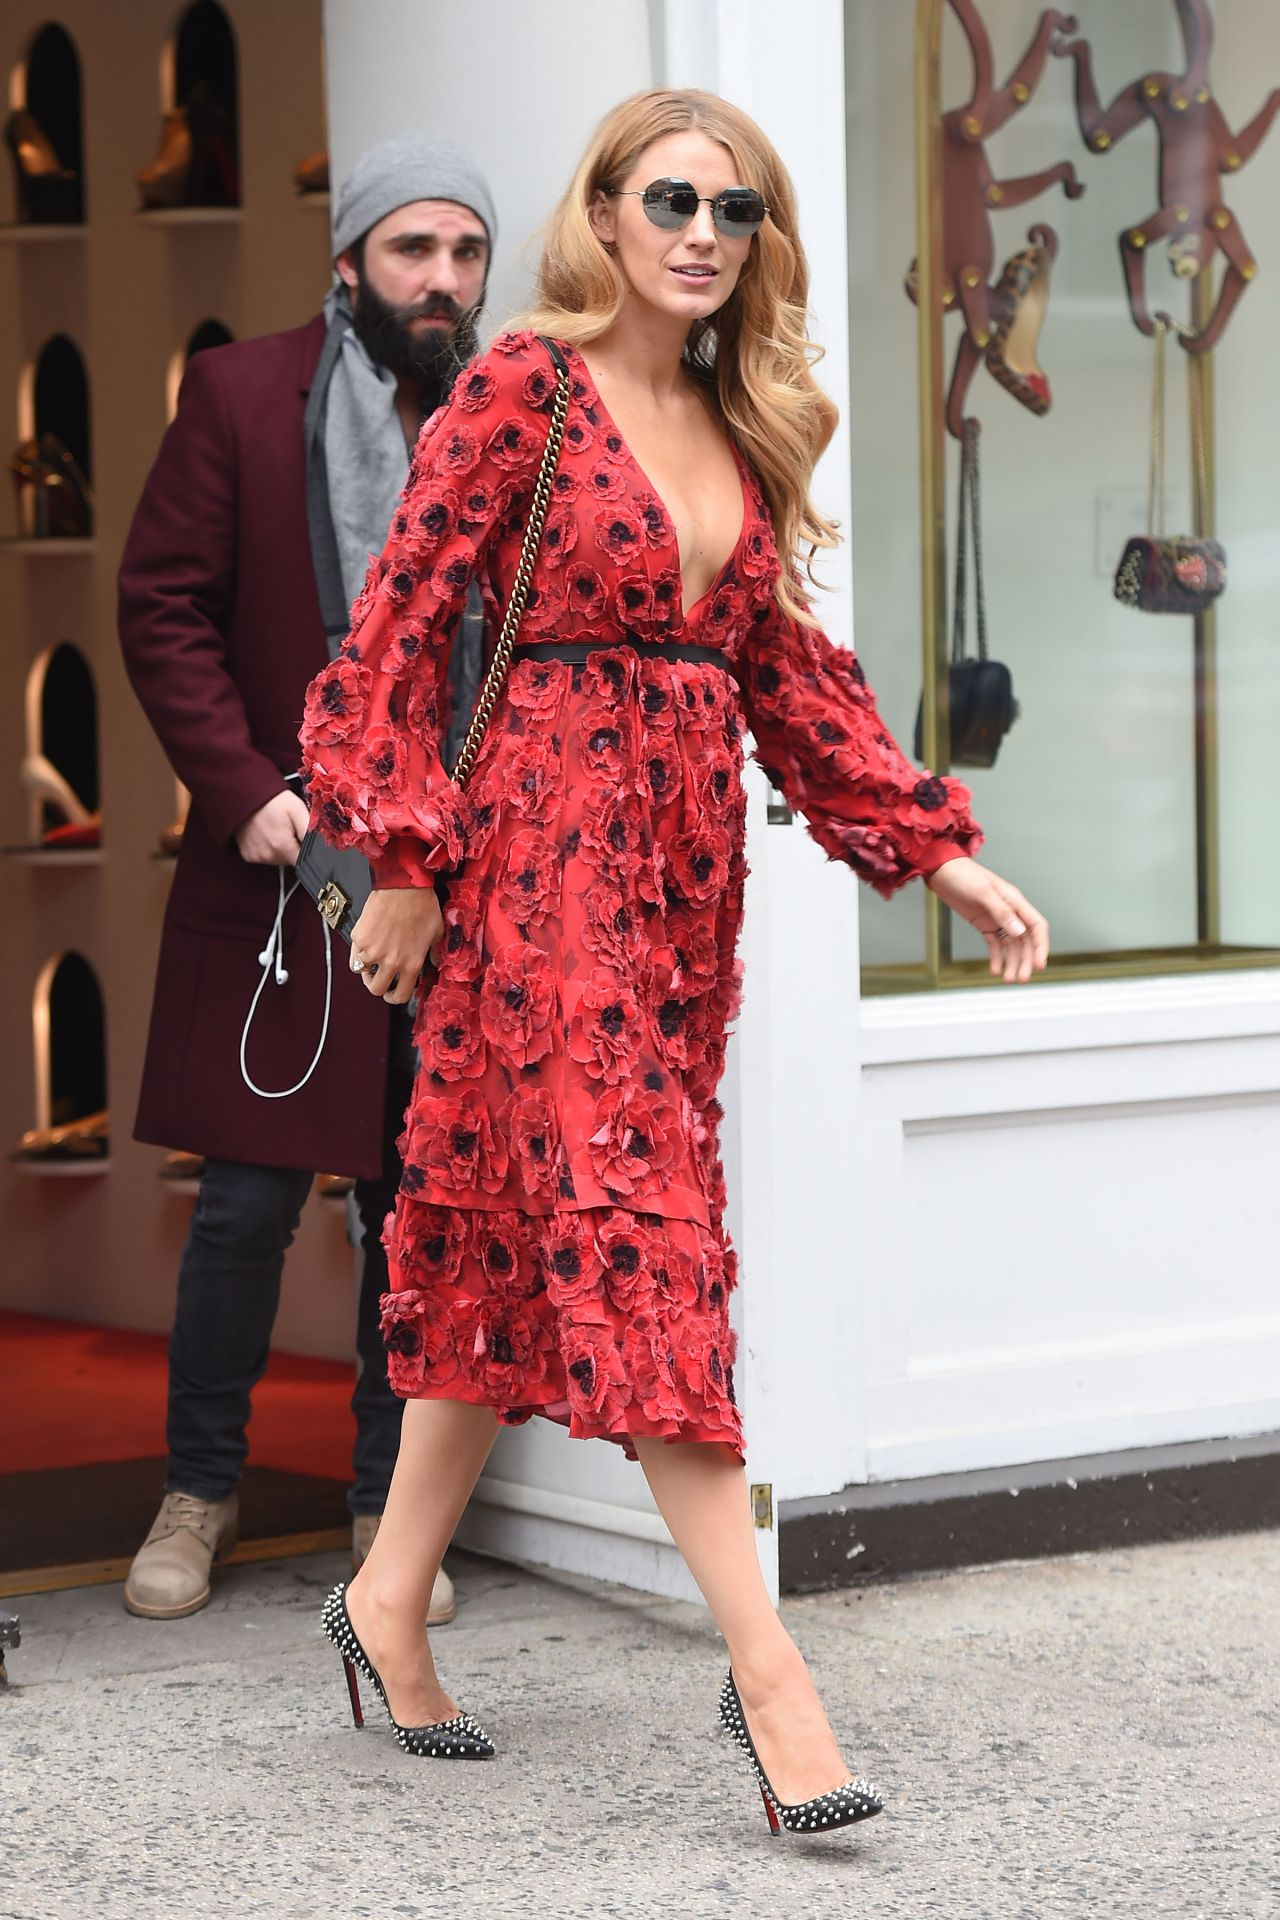 blake-lively-style-leaving-her-hotel-and-shopping-in-new-york-city-ny-2-17-2016-1